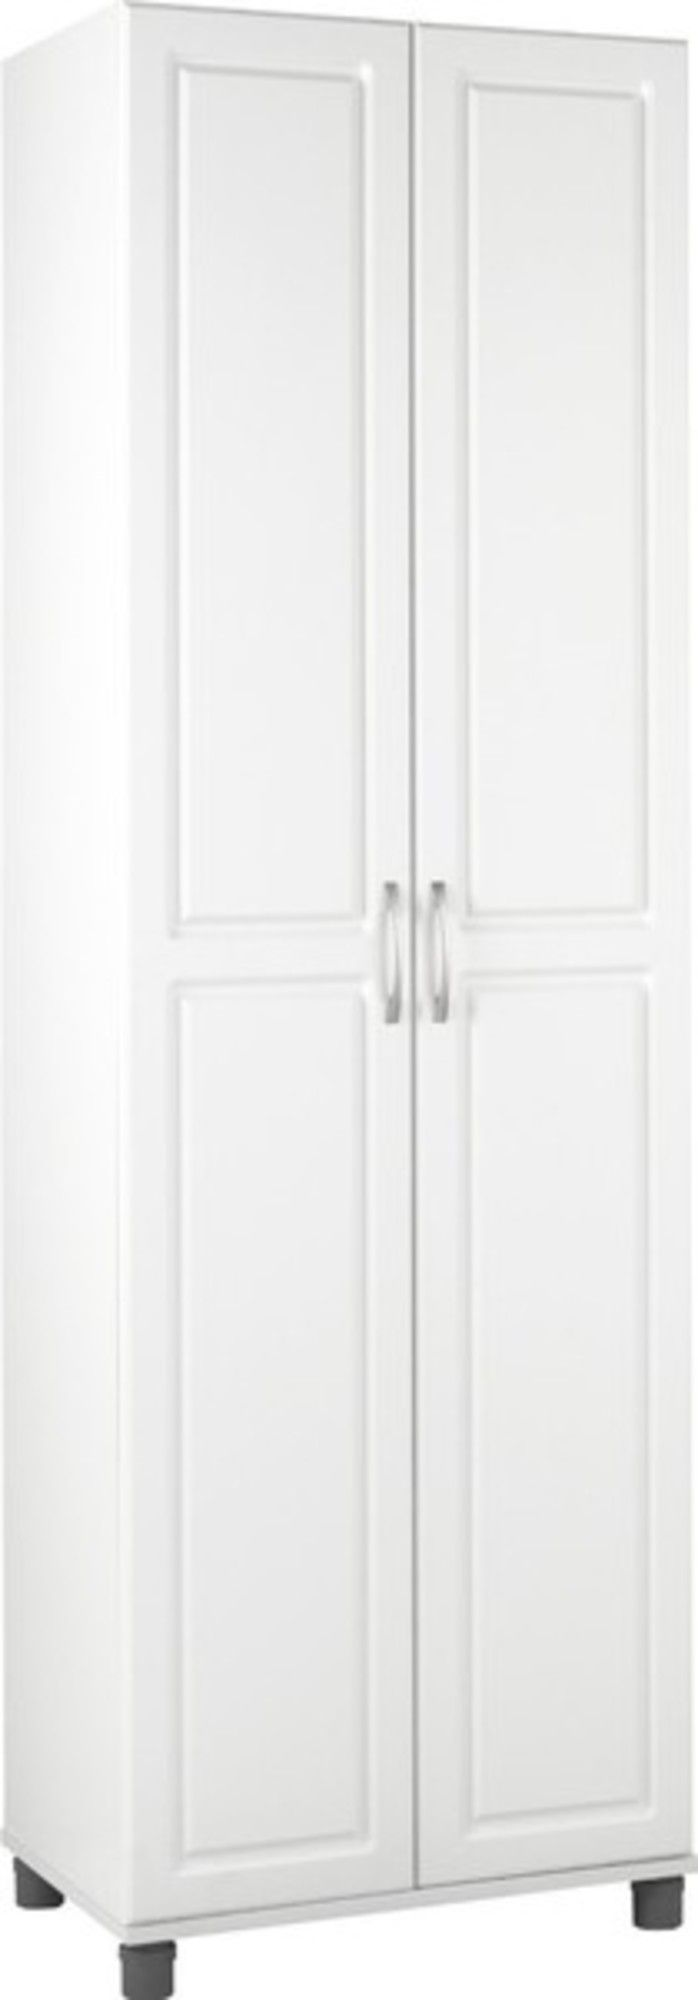 Affordable Free Standing Broom Closet Cabinet For Kitchen Or Garage   Best  Reviews